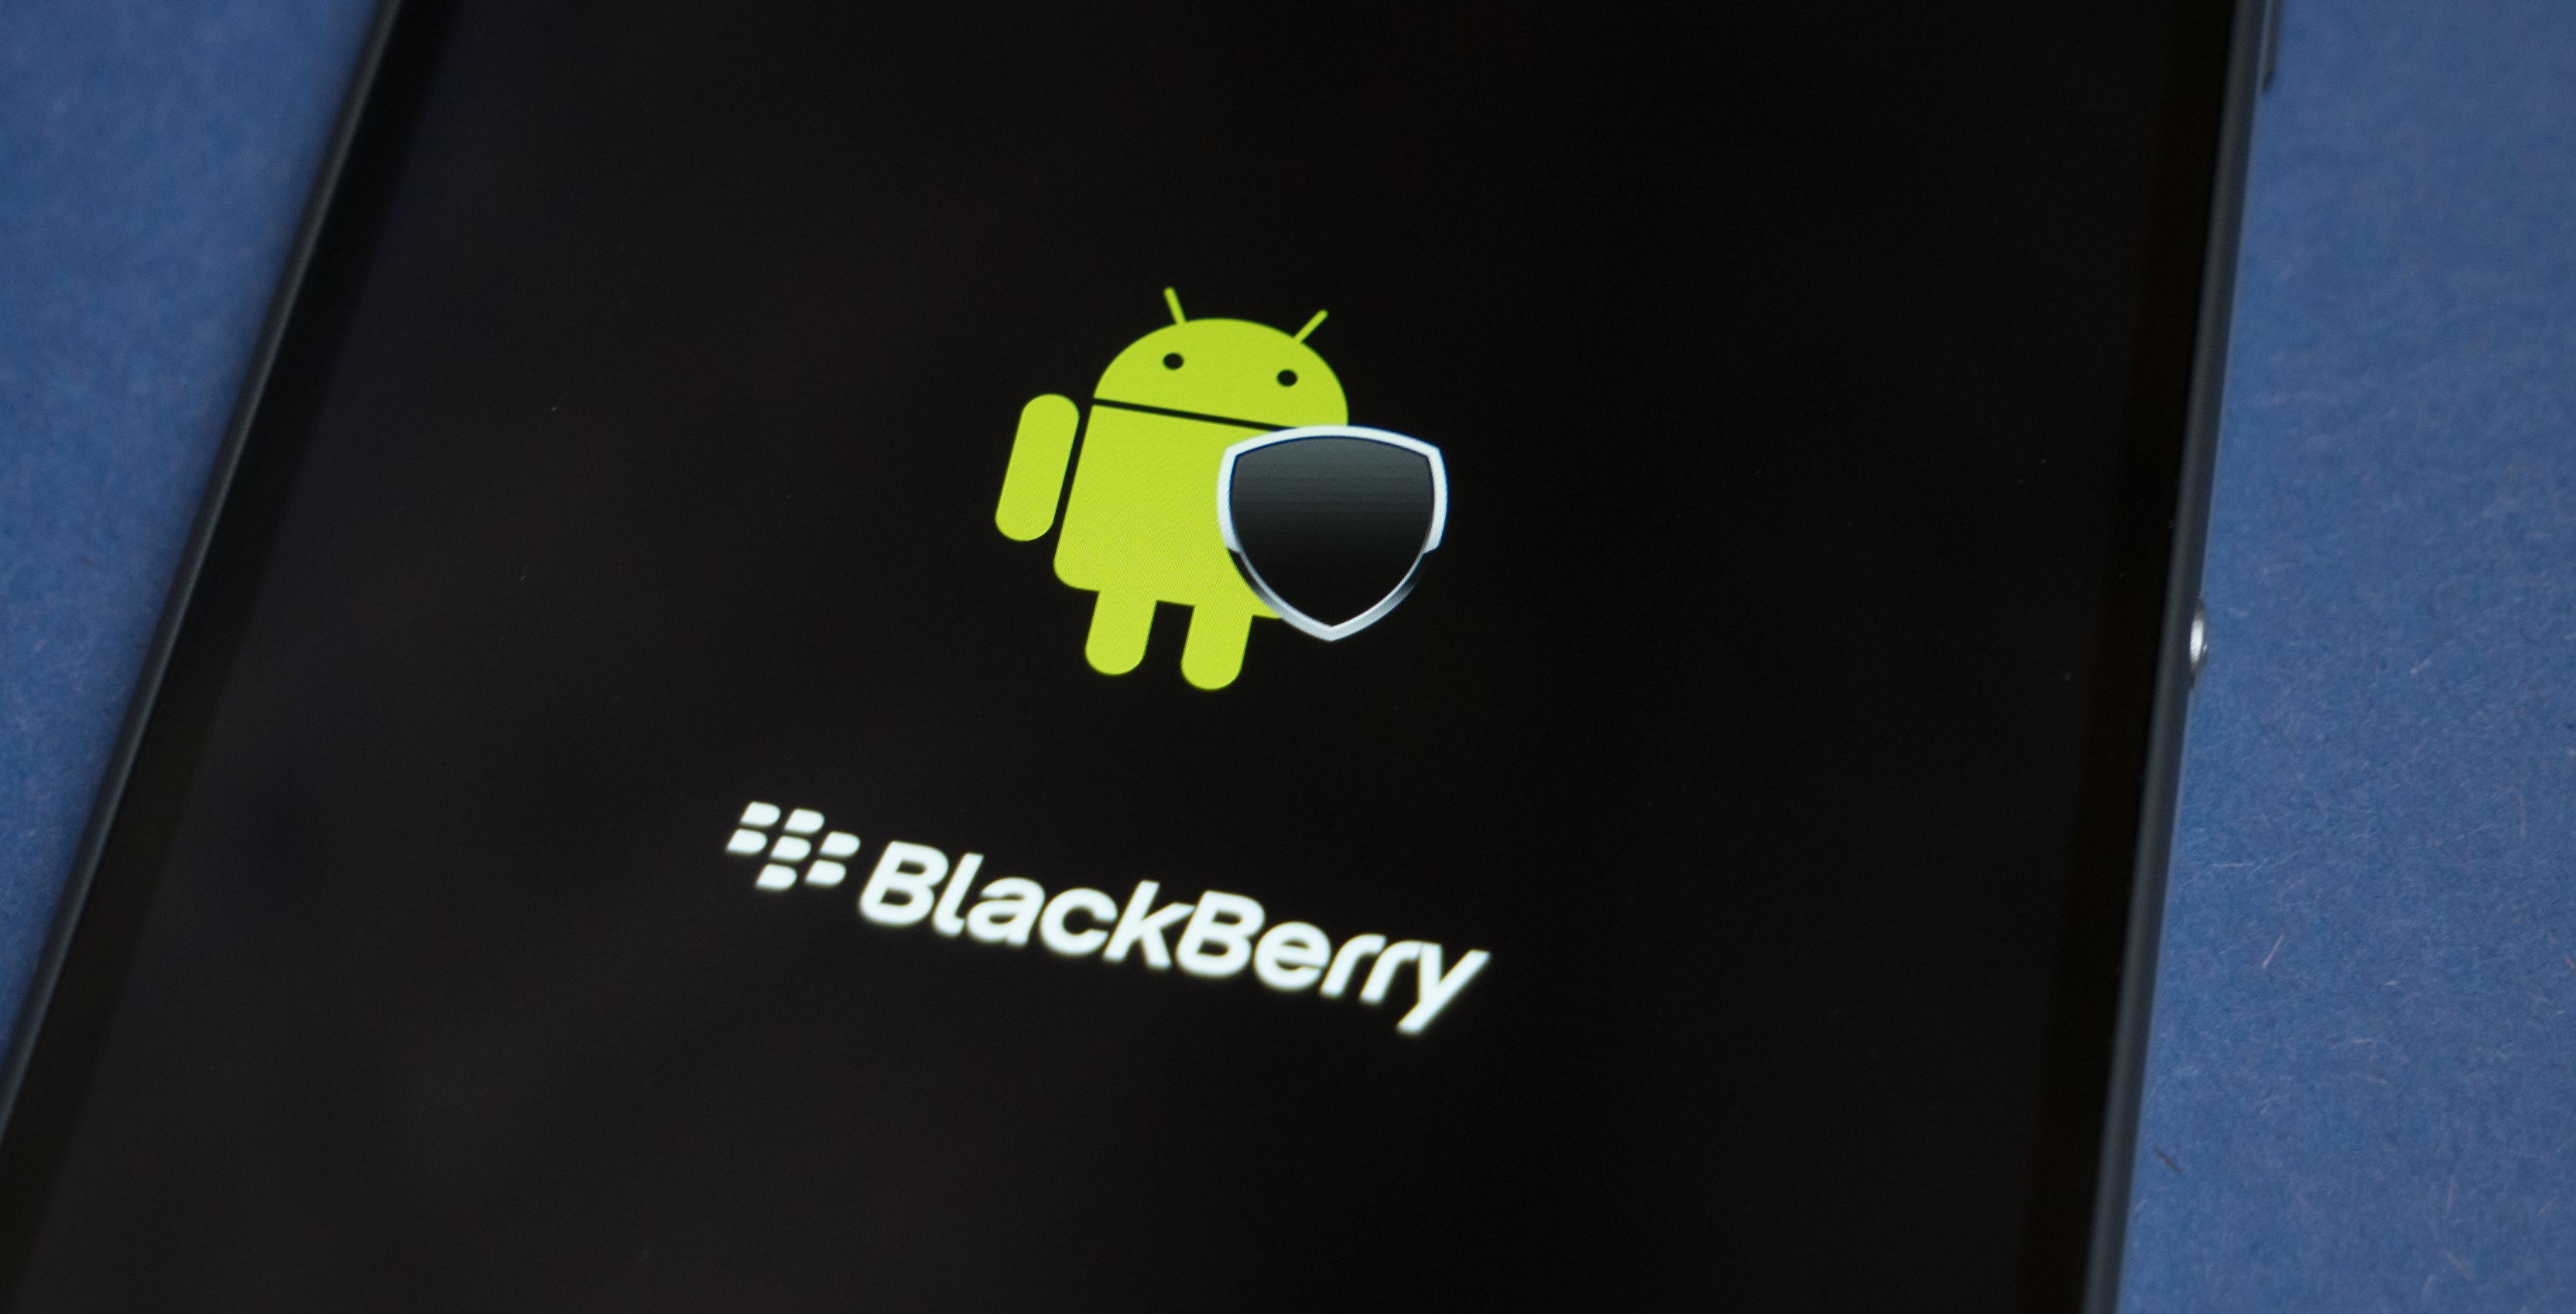 BlackBerry Secure Android logo